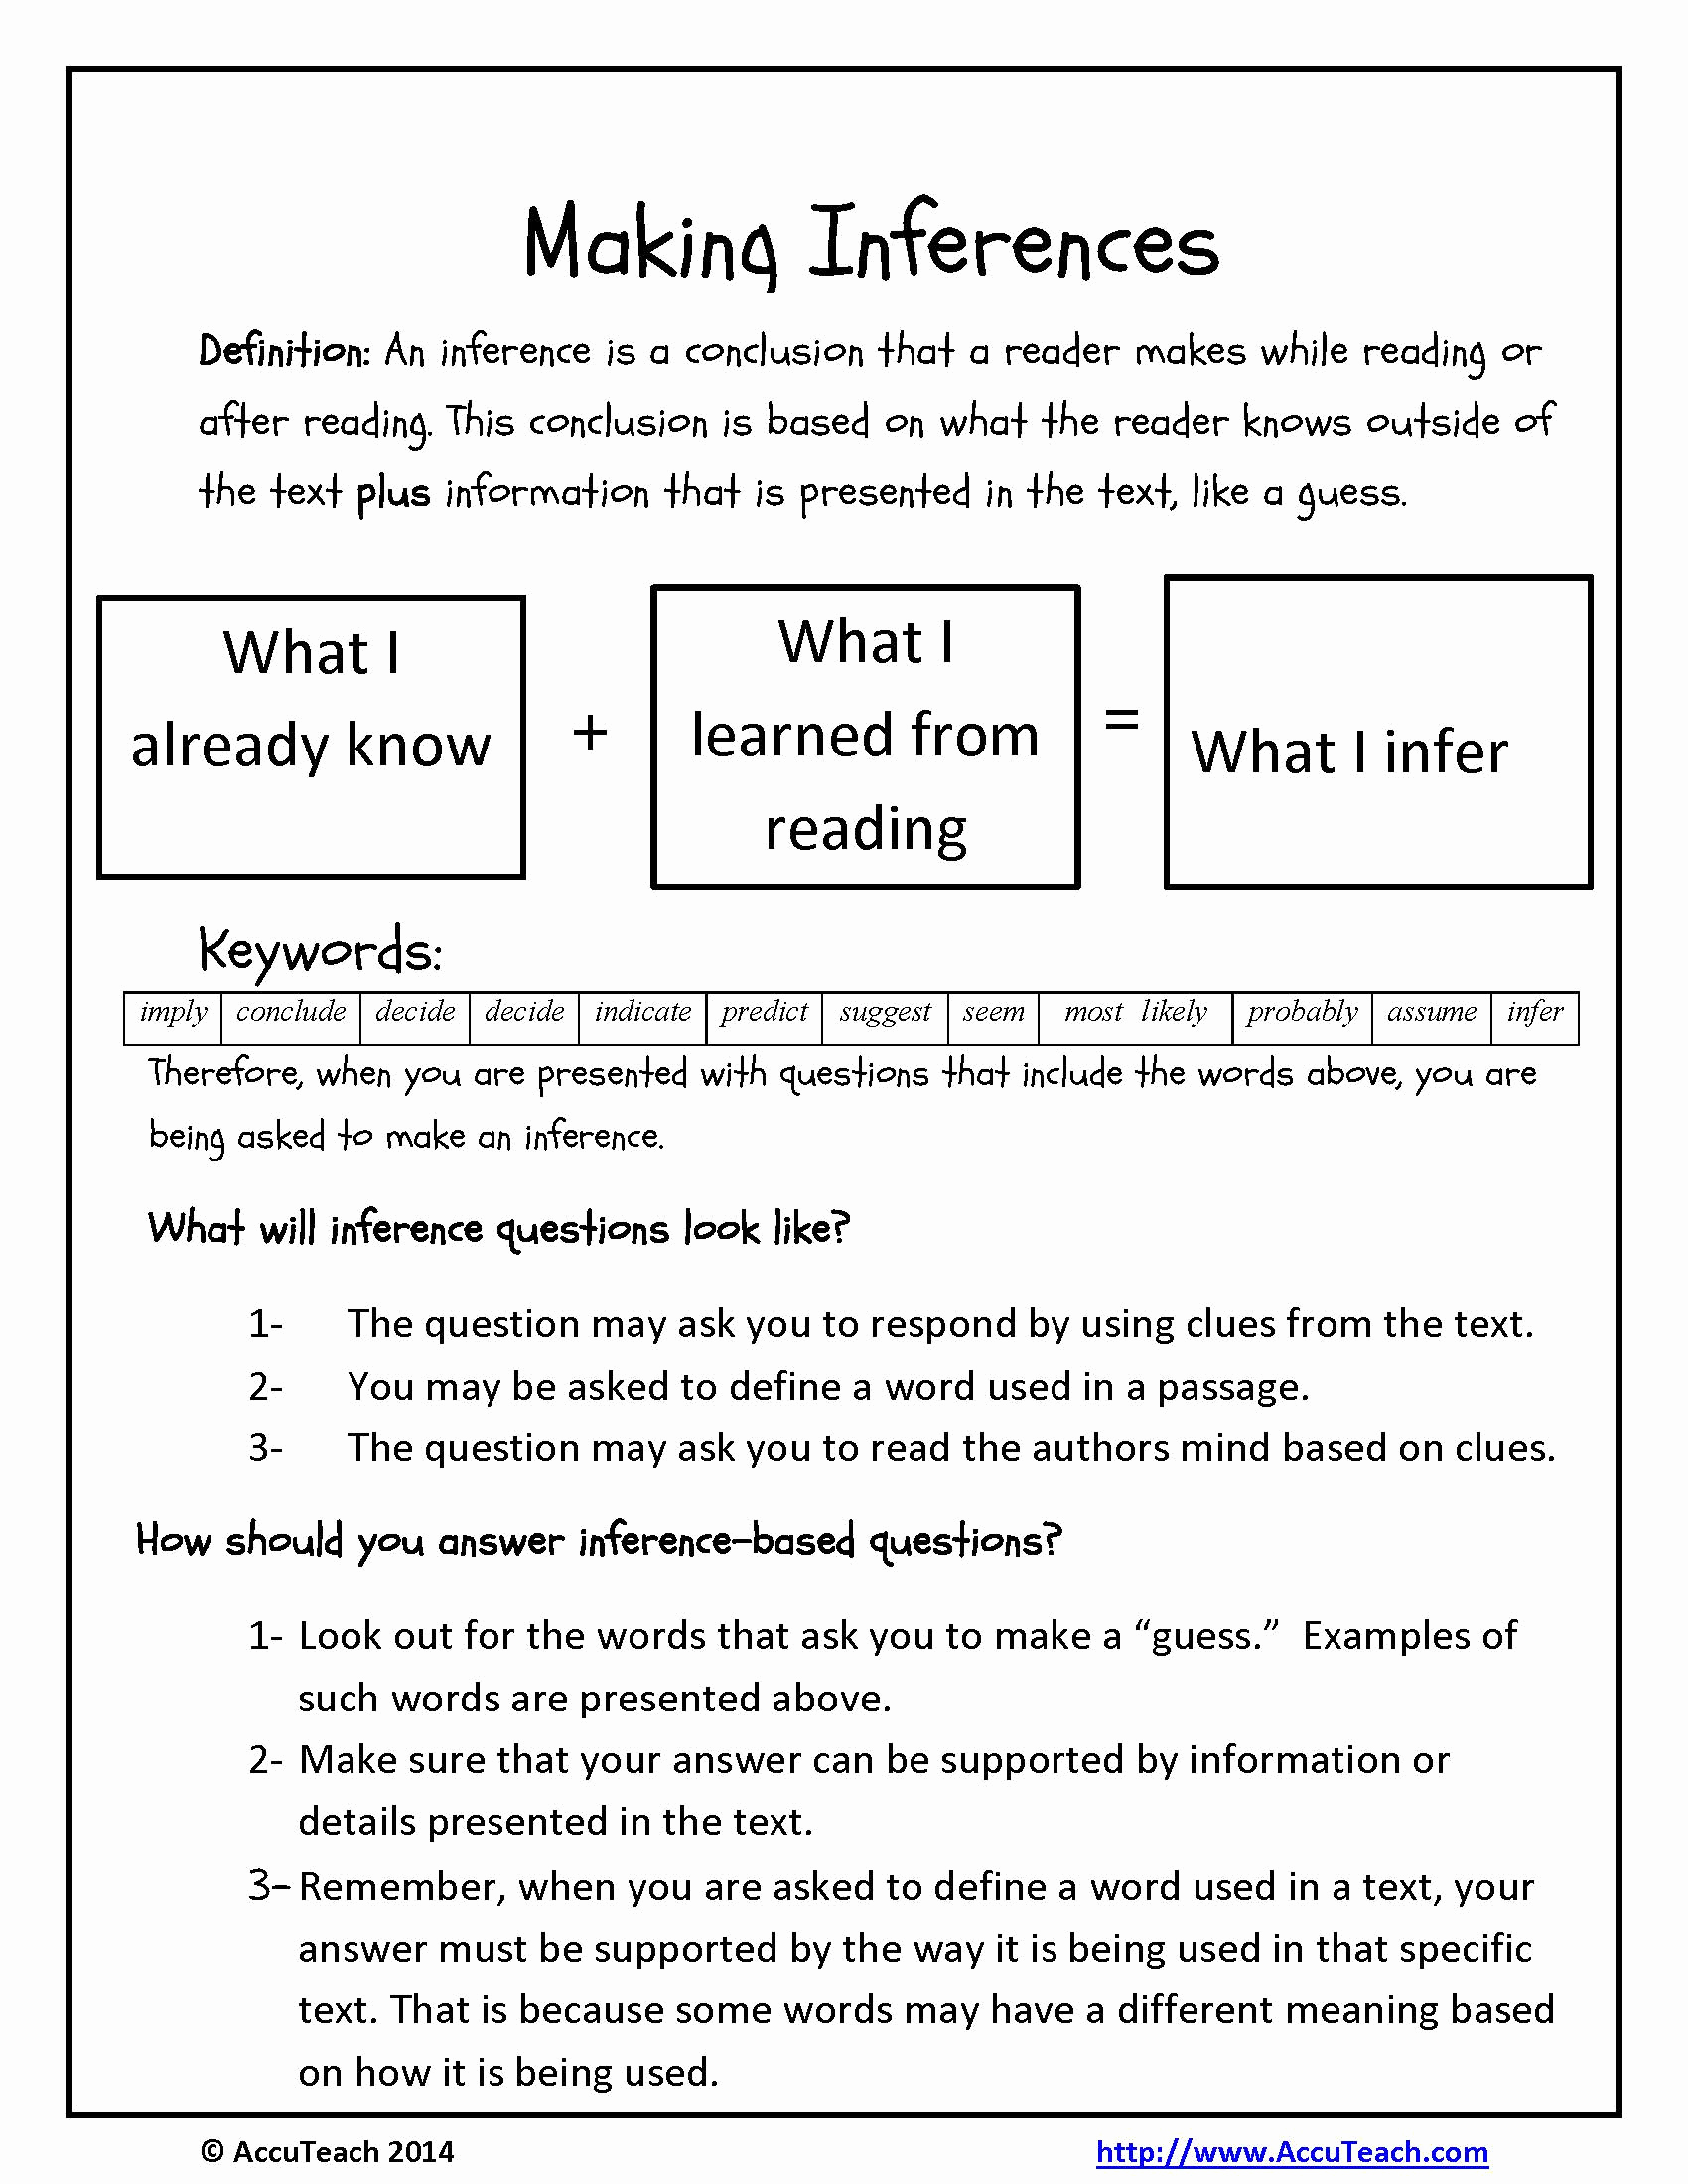 Making Inference Worksheets 4th Grade Beautiful 20 Making Inference Worksheets 4th Grade